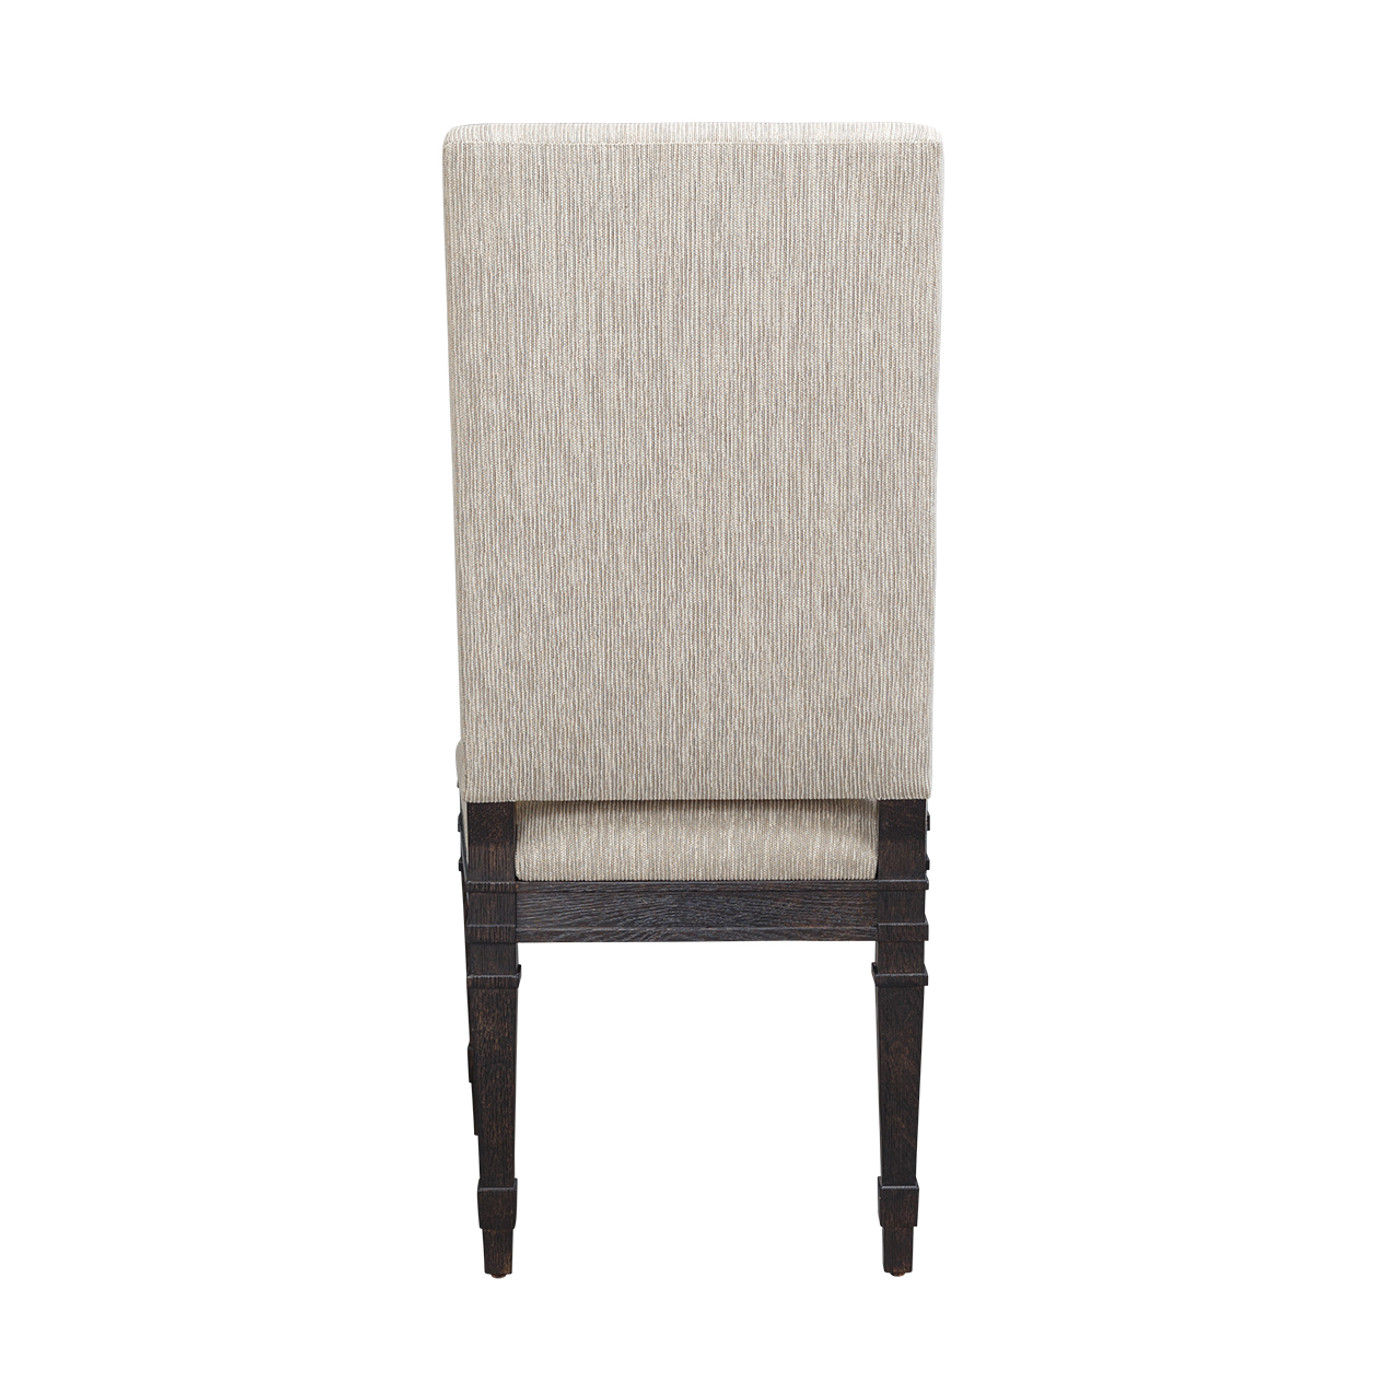 Ashton Chair #2